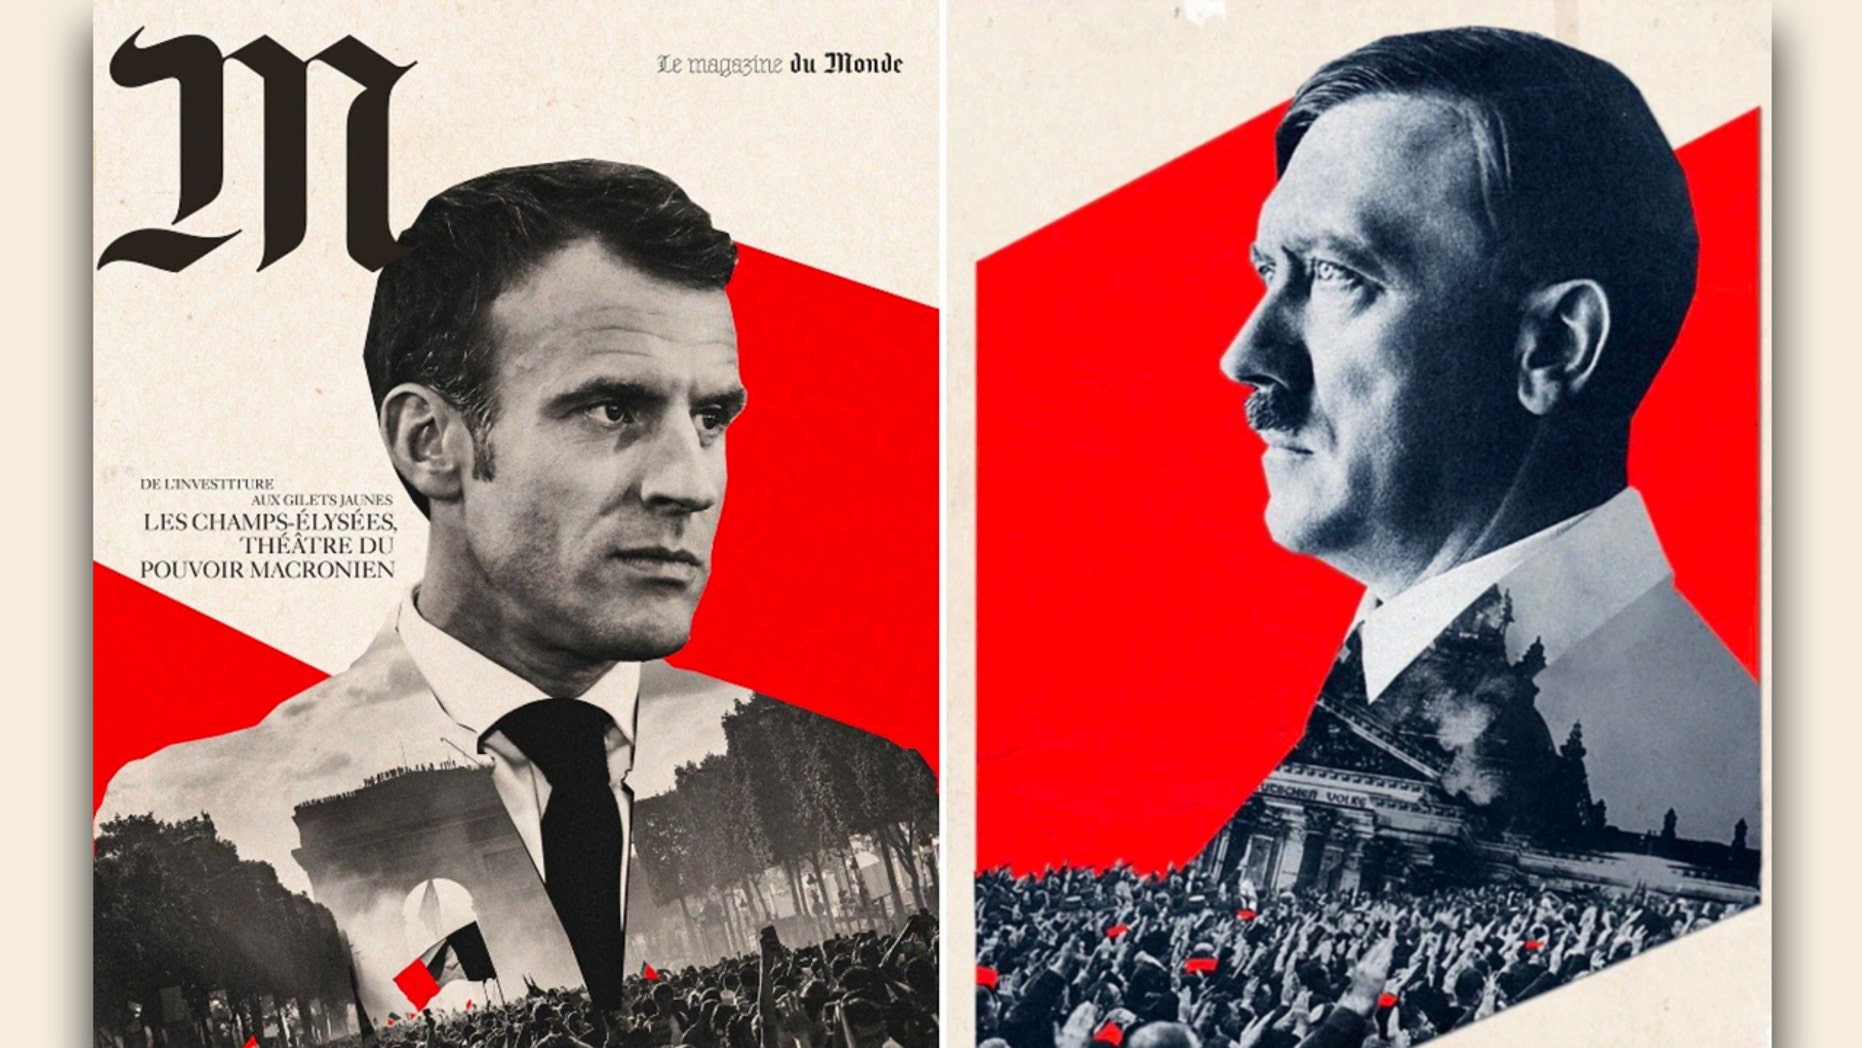 Le Monde apologized after readers said its Saturday magazine cover likened French President Emmanuel Macron to German dictator Adolf Hitler.